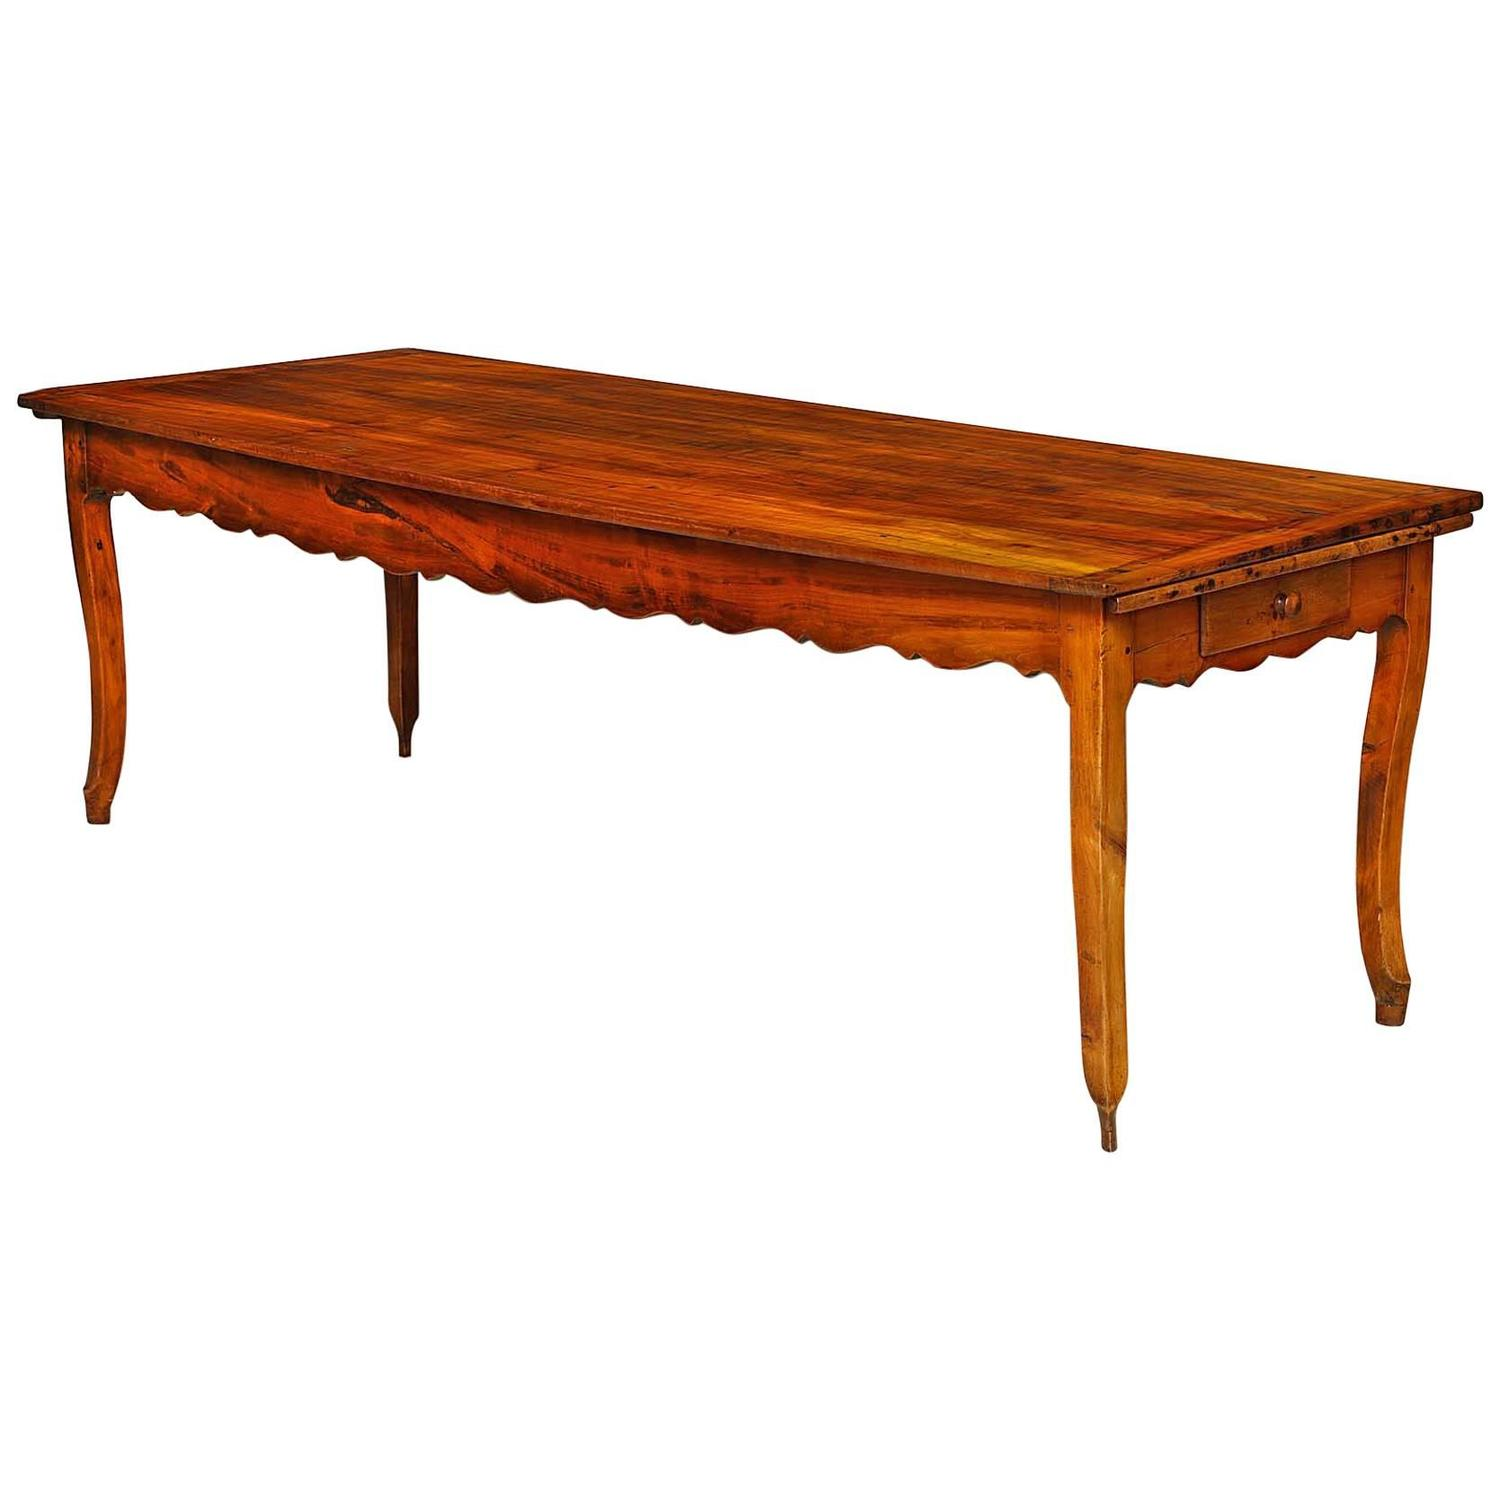 Fine French Fruitwood Farmhouse Table For Sale at 1stdibs